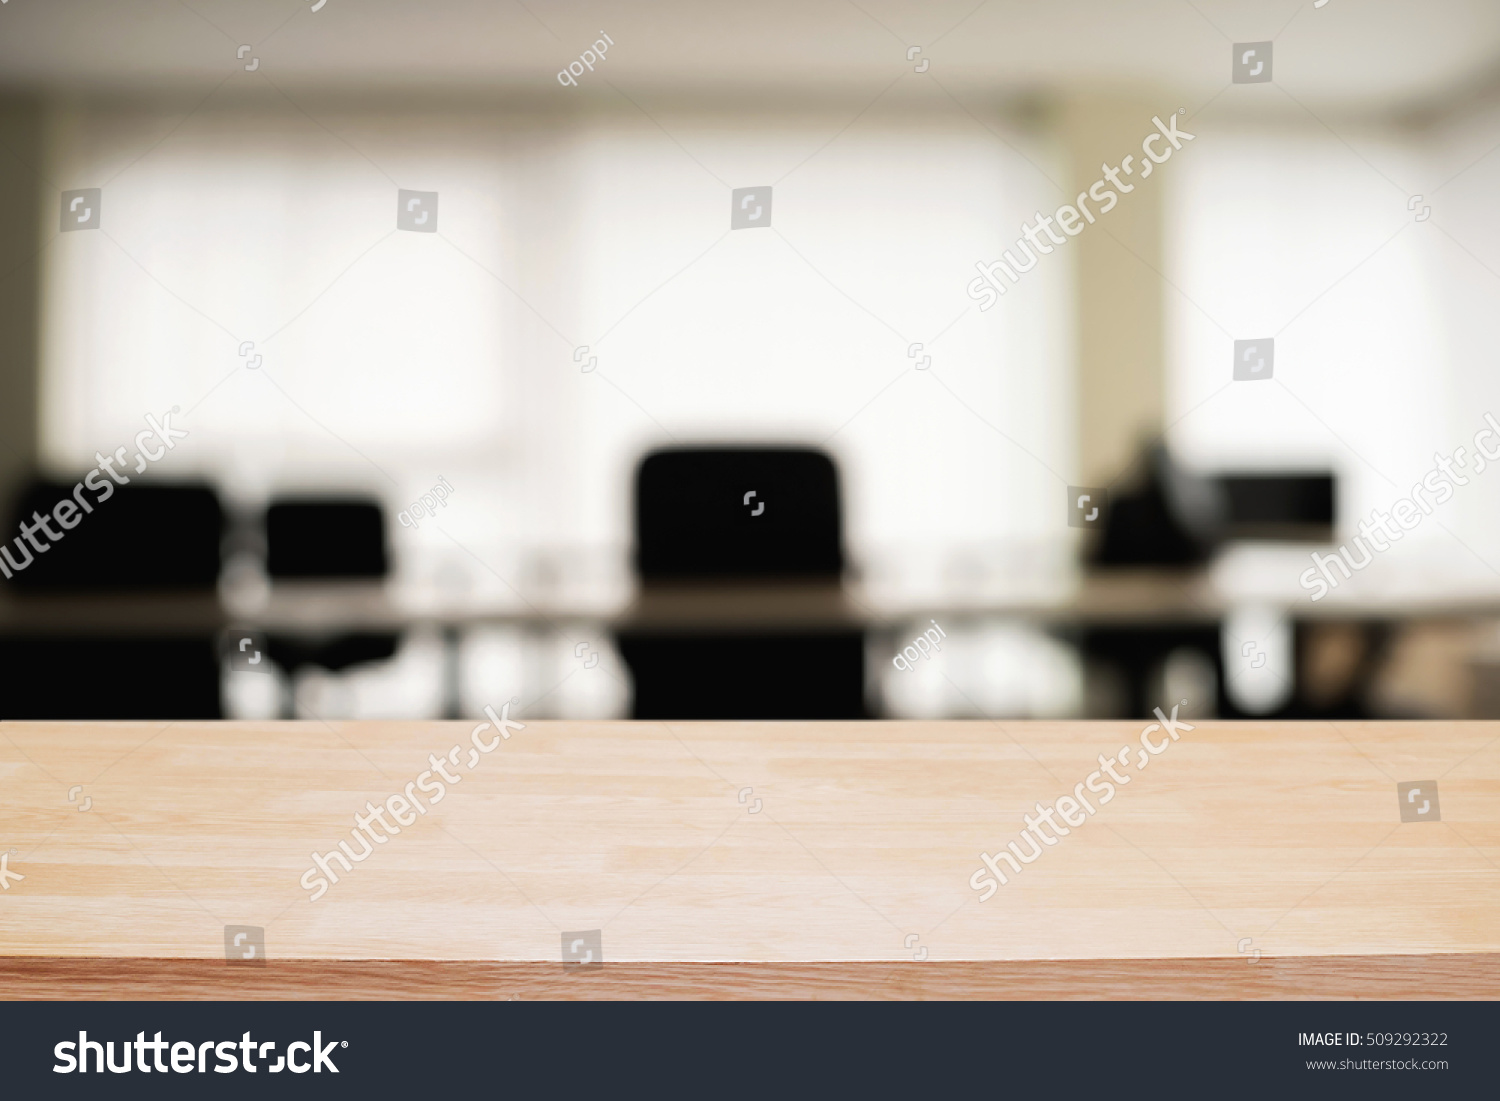 Empty Wooden Desk Space Over Blurred Office Or Meeting Room Background Product Display